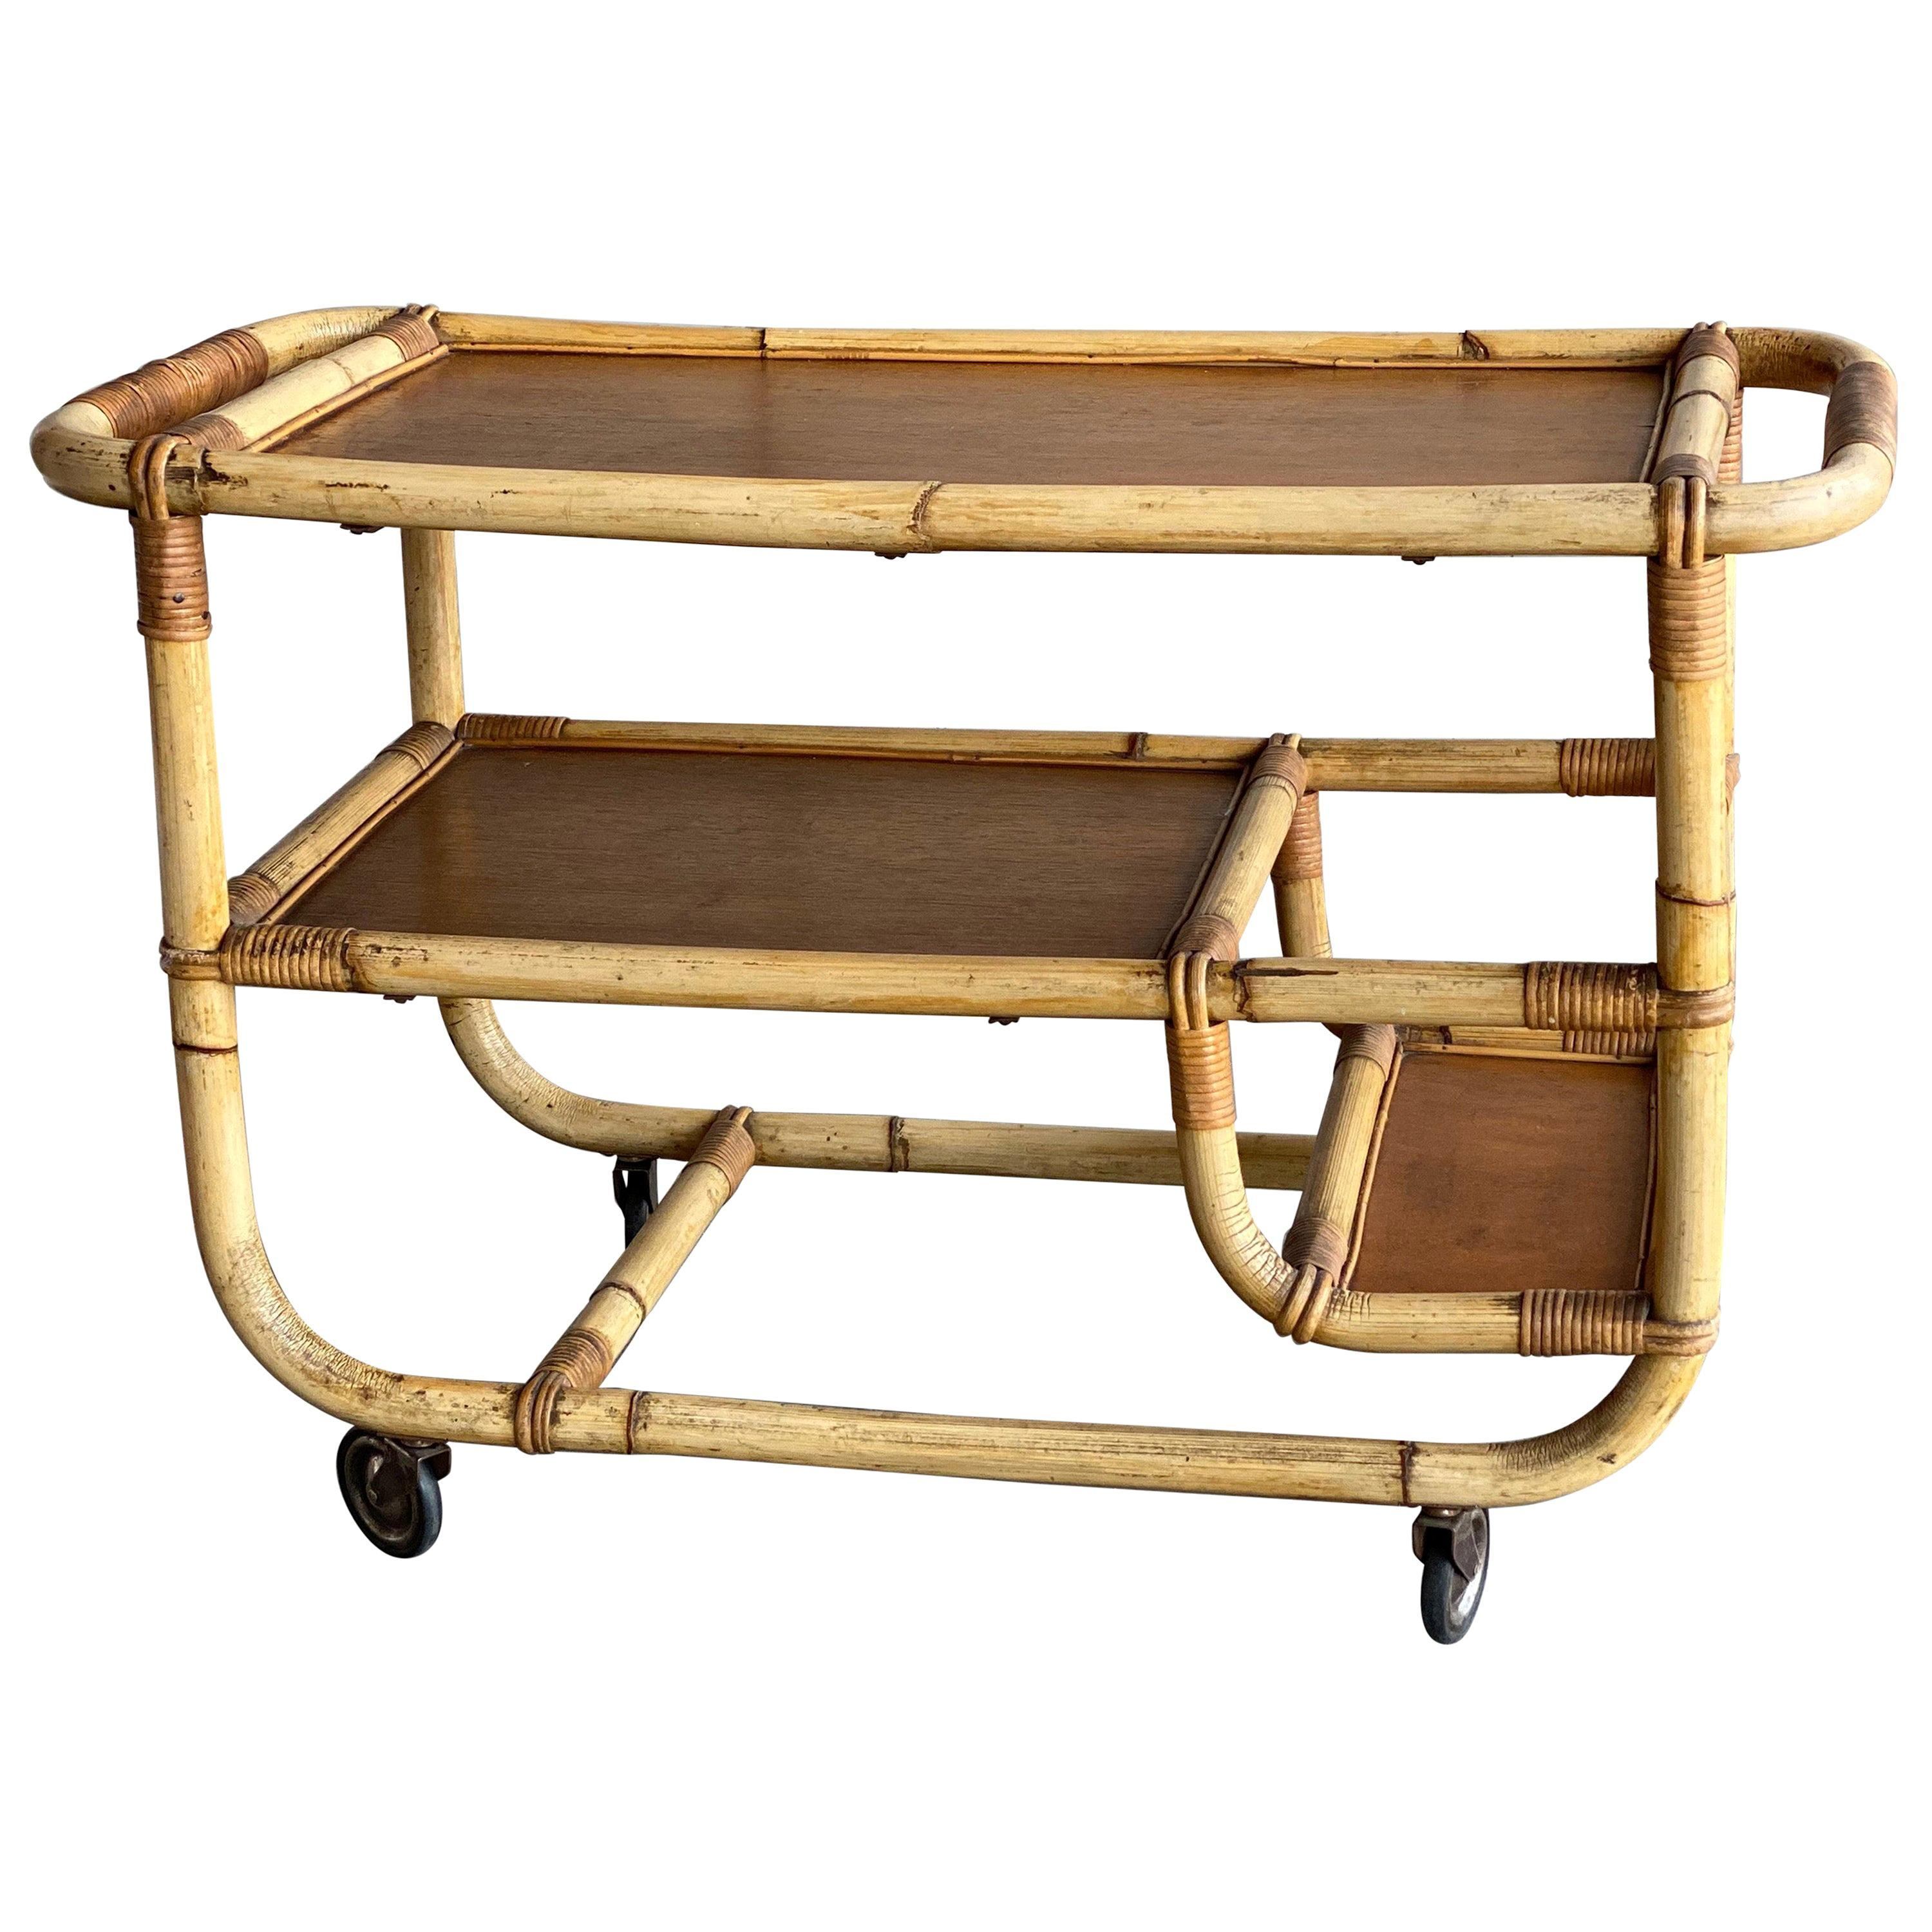 Bamboo Serving Trolley, 1940s, Art Deco, Midcentury Bar